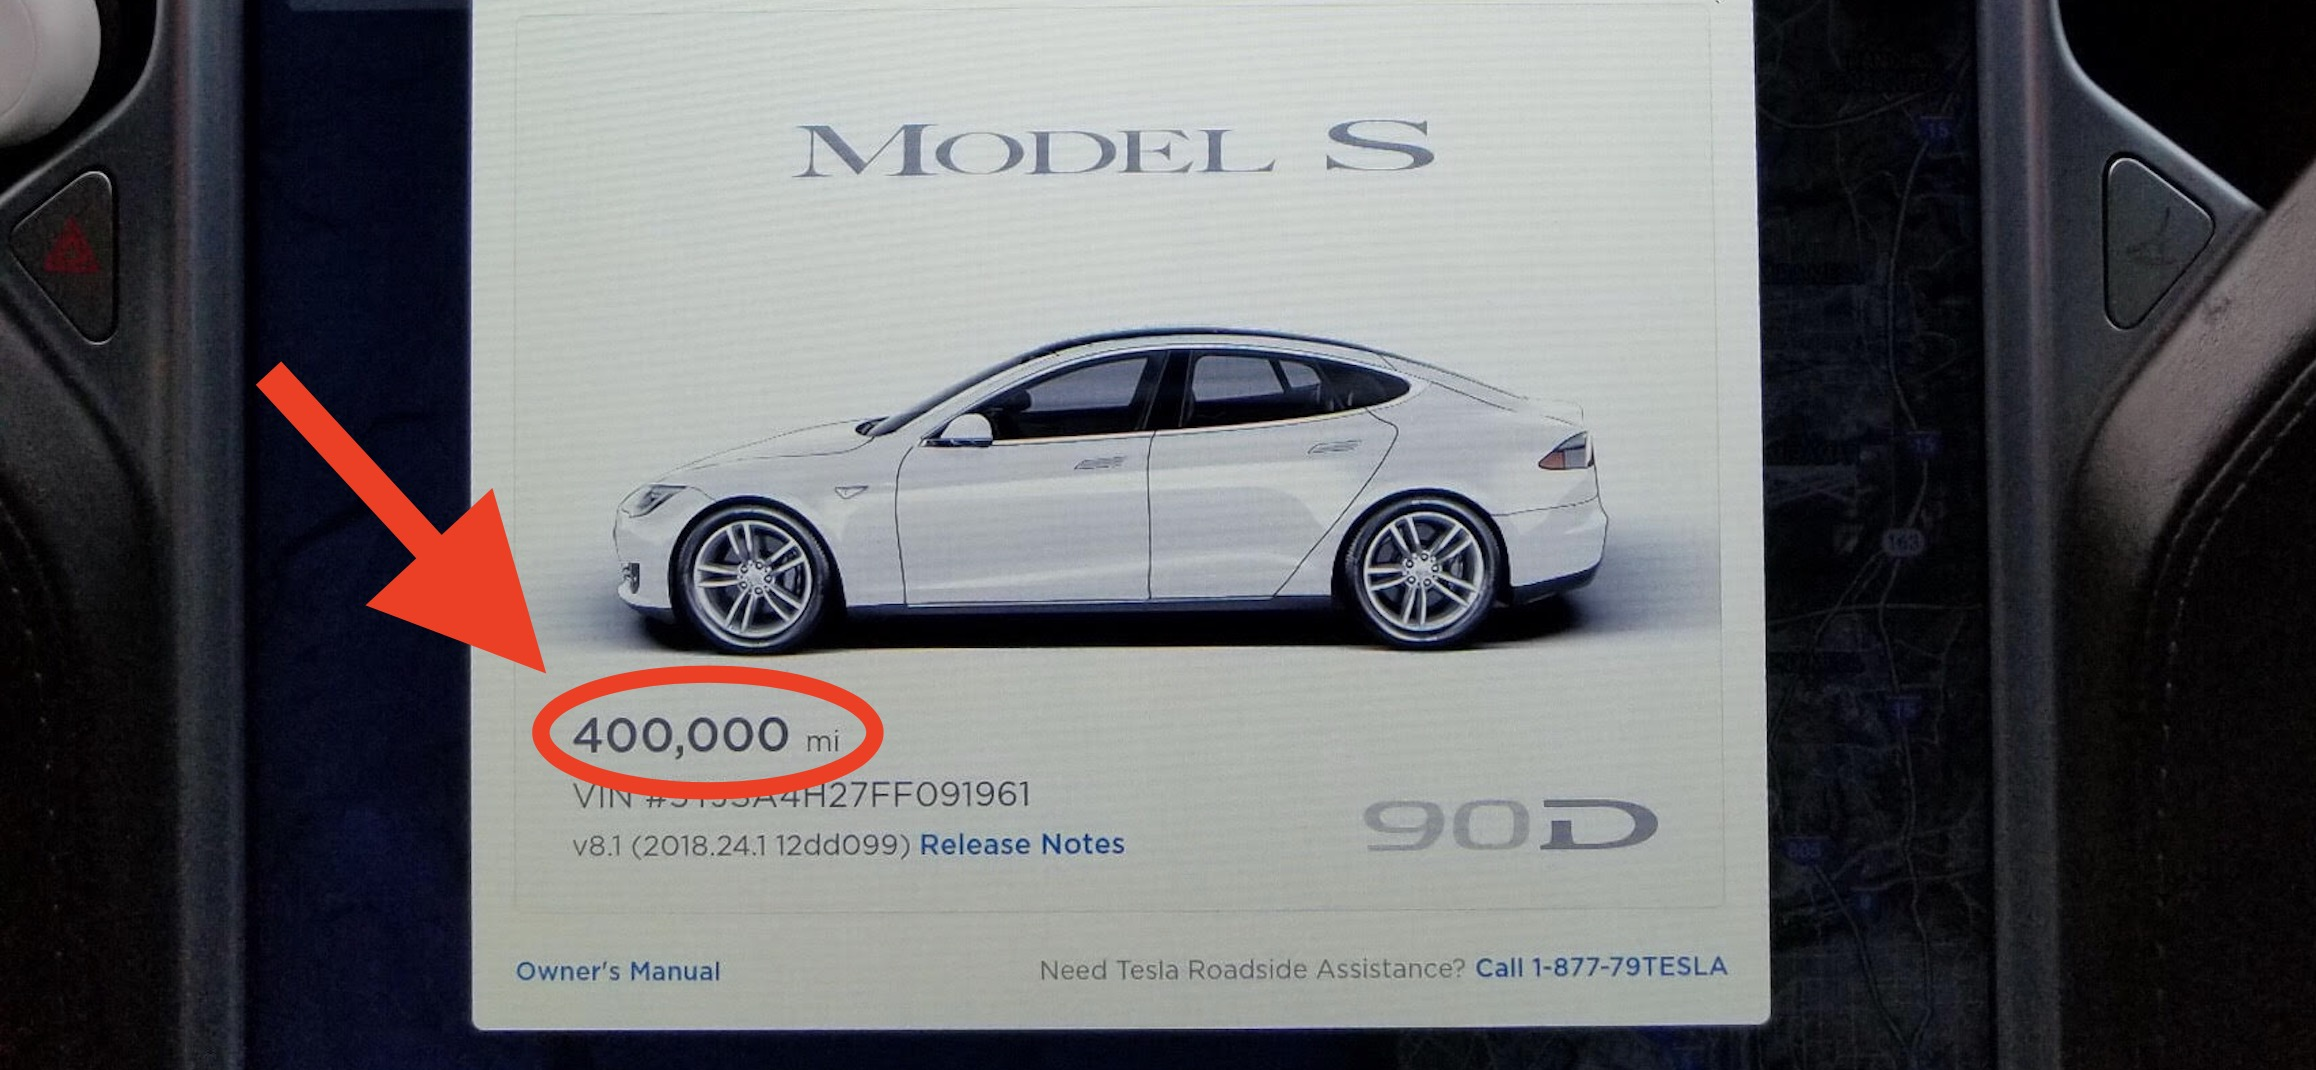 Miles And More Car Rental Here S How A Tesla Model S Holds Up After 400 000 Miles In 3 Years